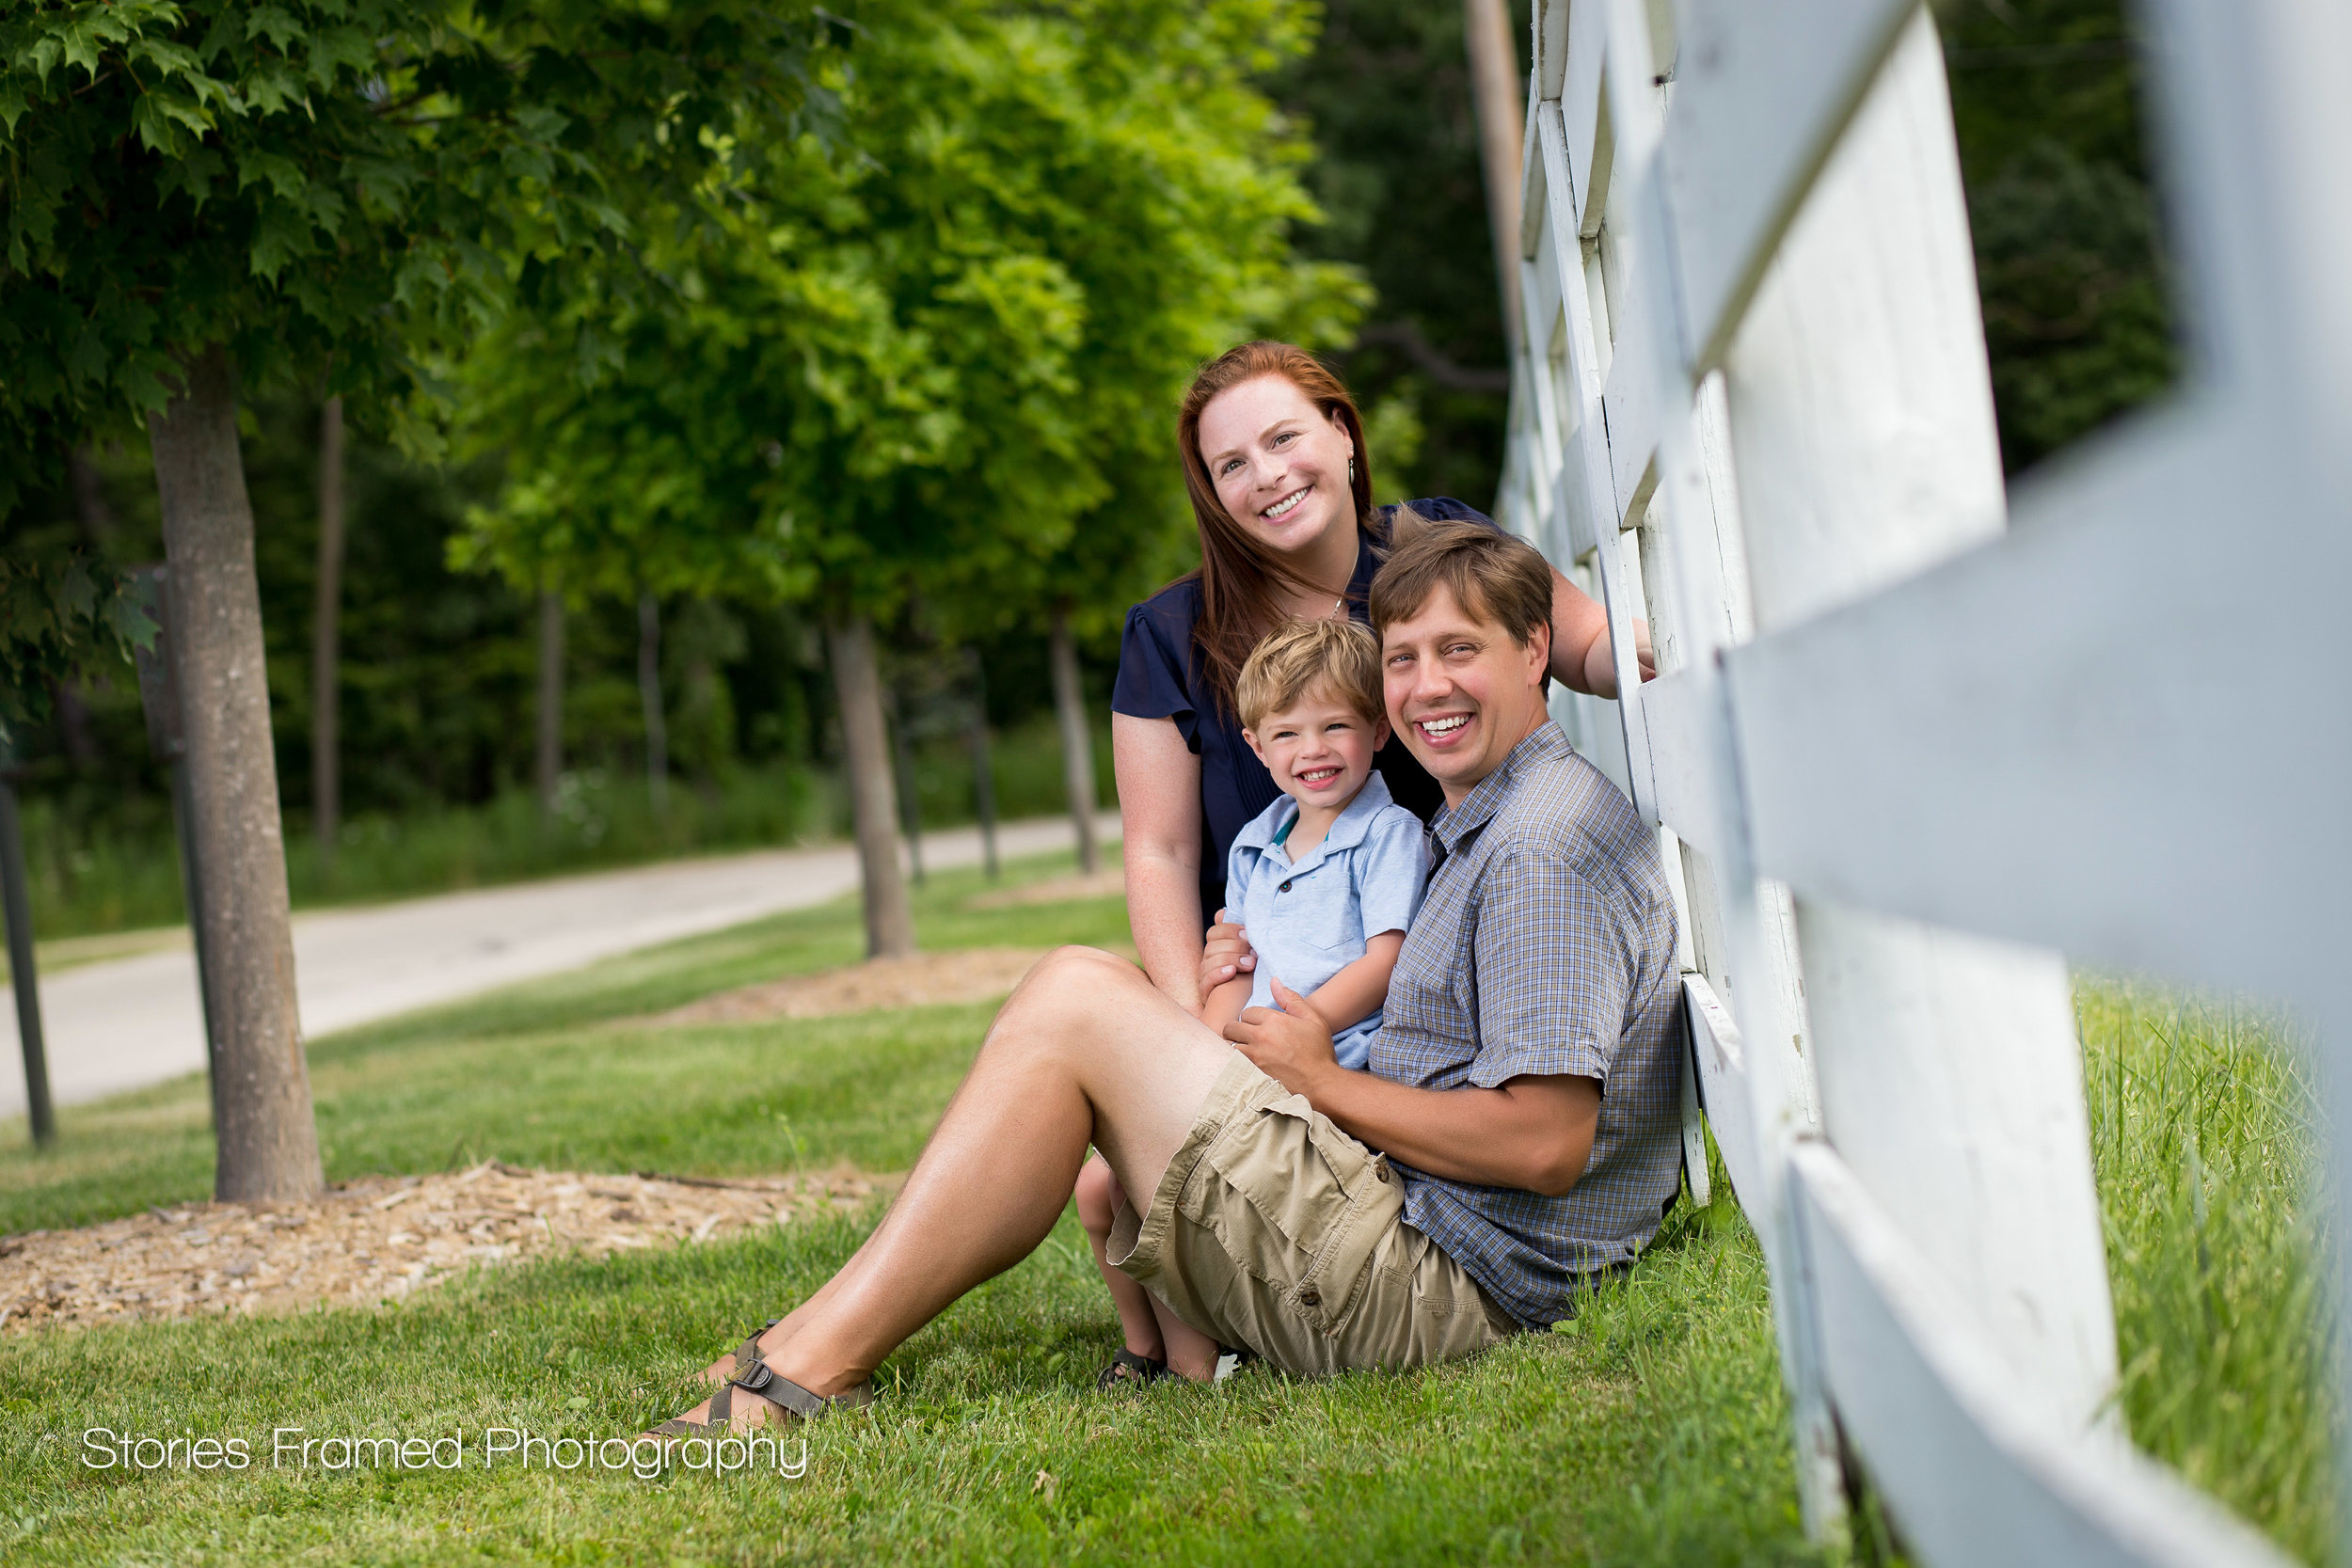 Family of 3 Portrait in a Park 2015